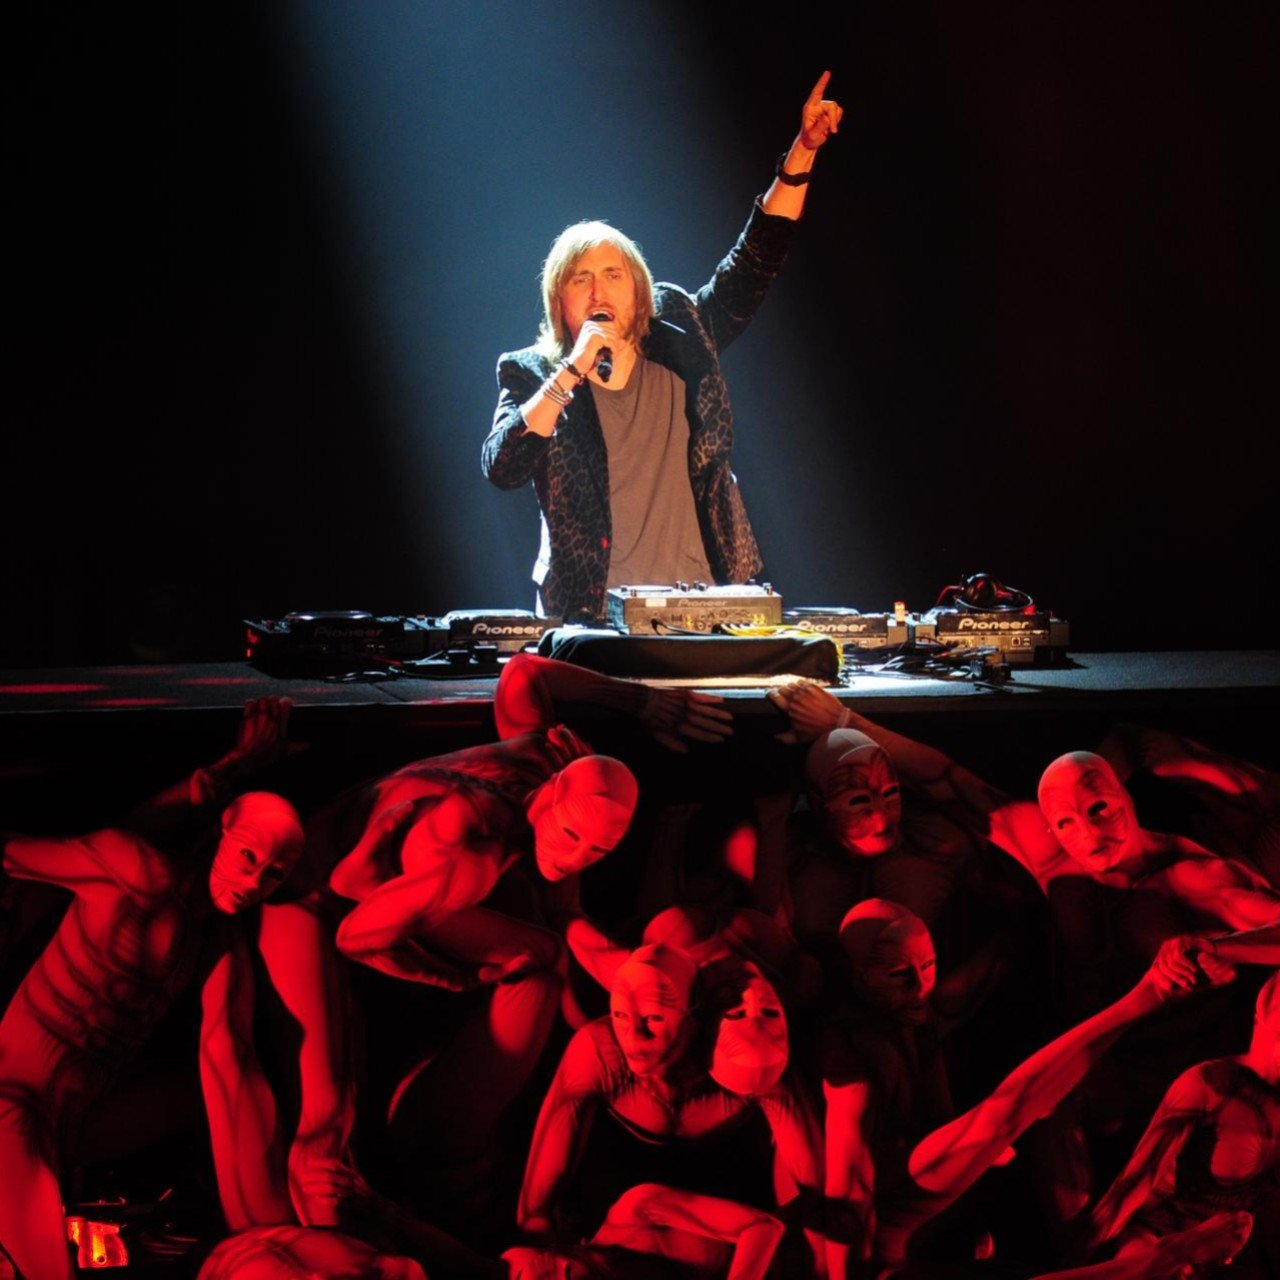 DJ David Guetta living the moment after 20-year wait for